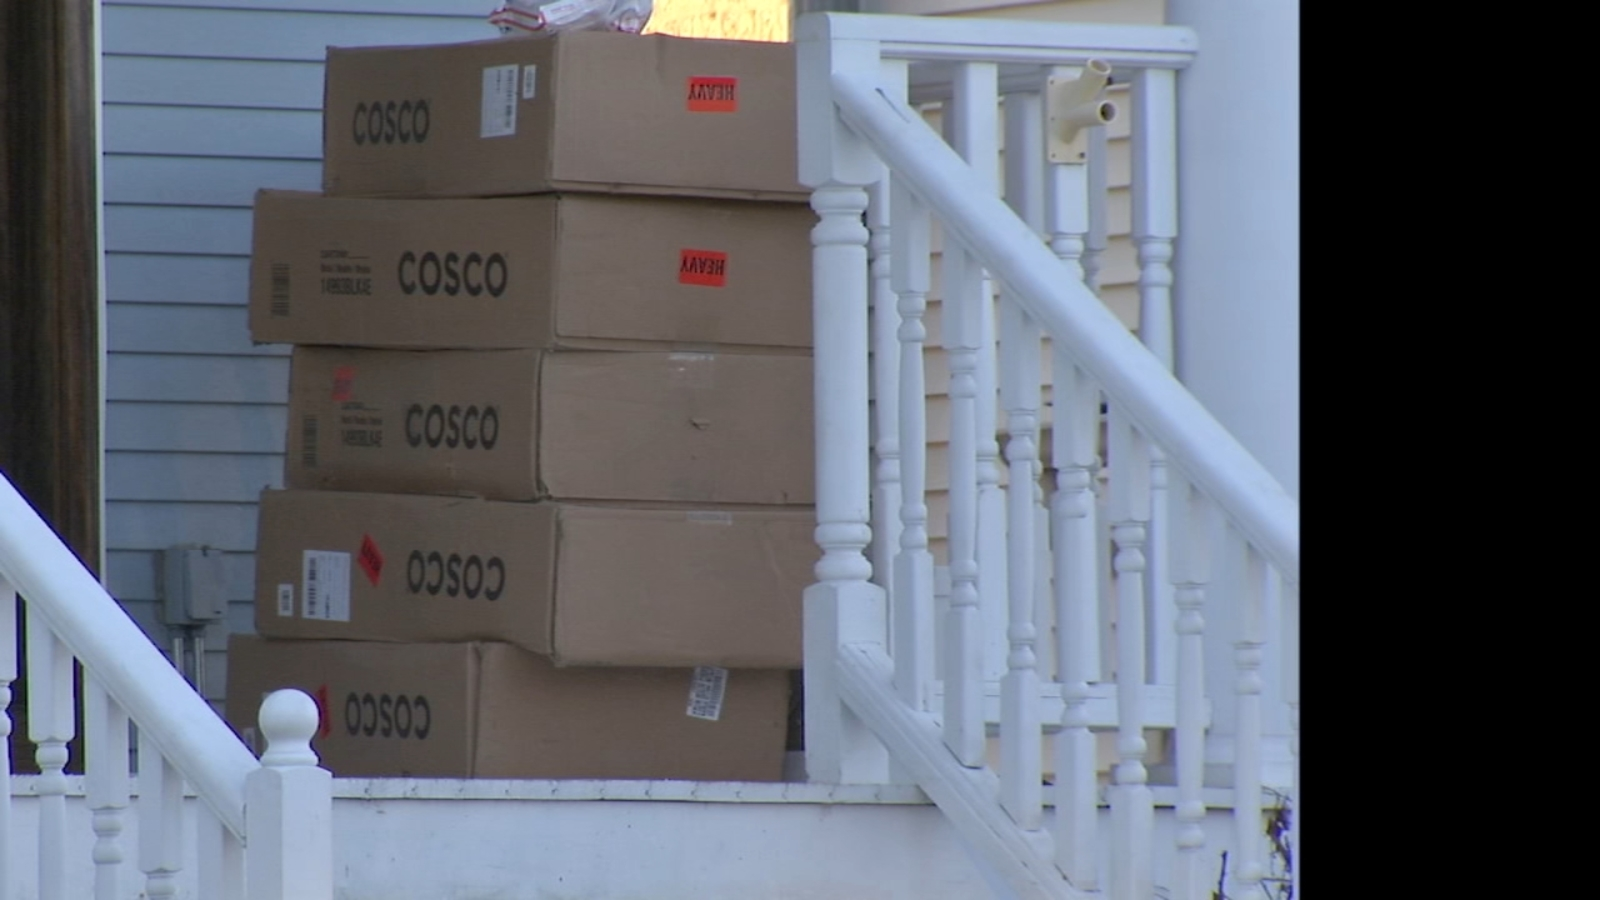 Quick Tip: As online ordering increases amid coronavirus pandemic, avoid porch pirates